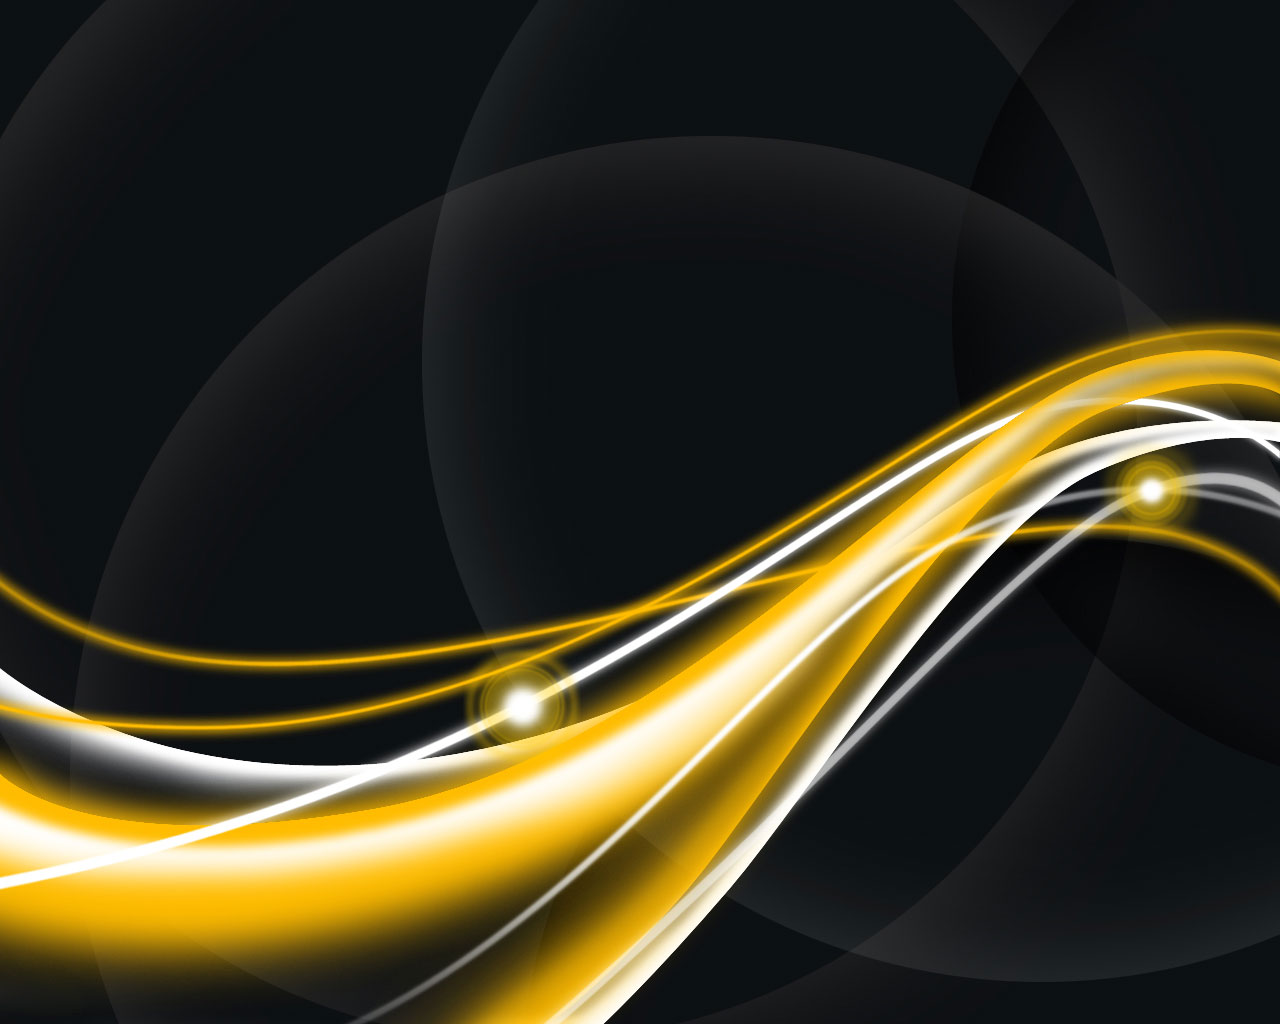 black and gold wavy abstract background powerpoint #5118